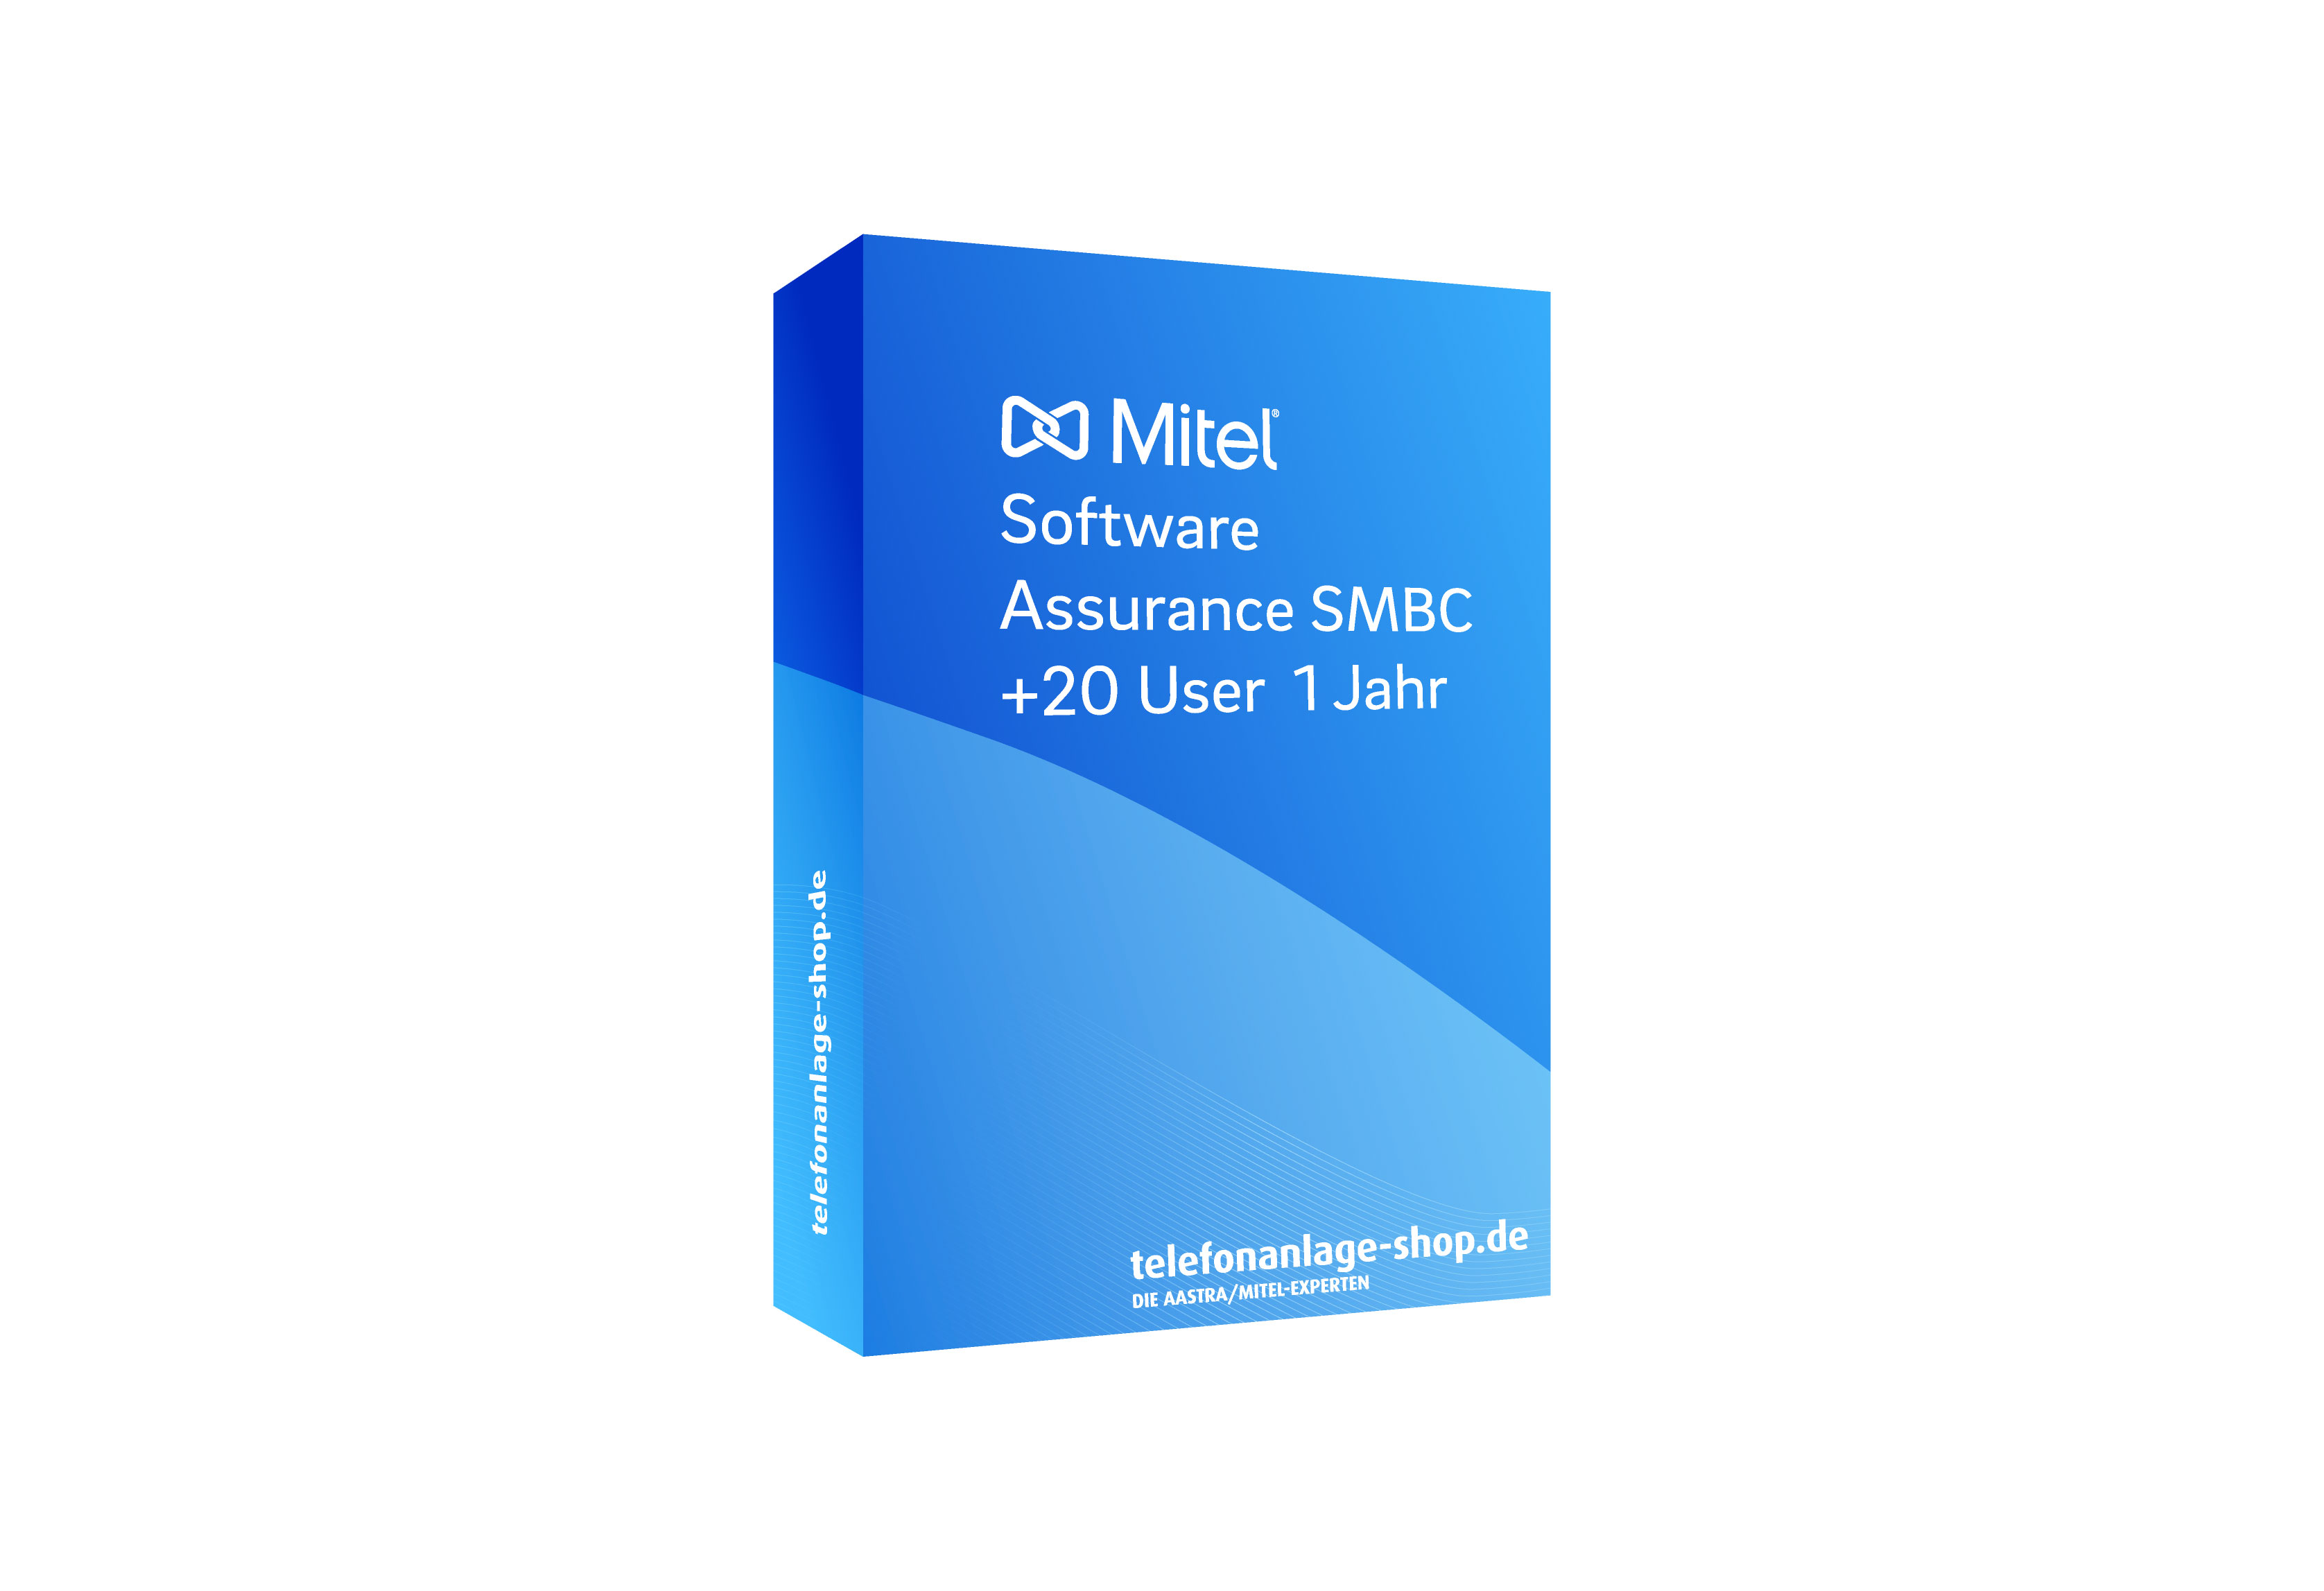 Vollansicht - Mitel Software Assurance SMBC +20 User 1Jahr